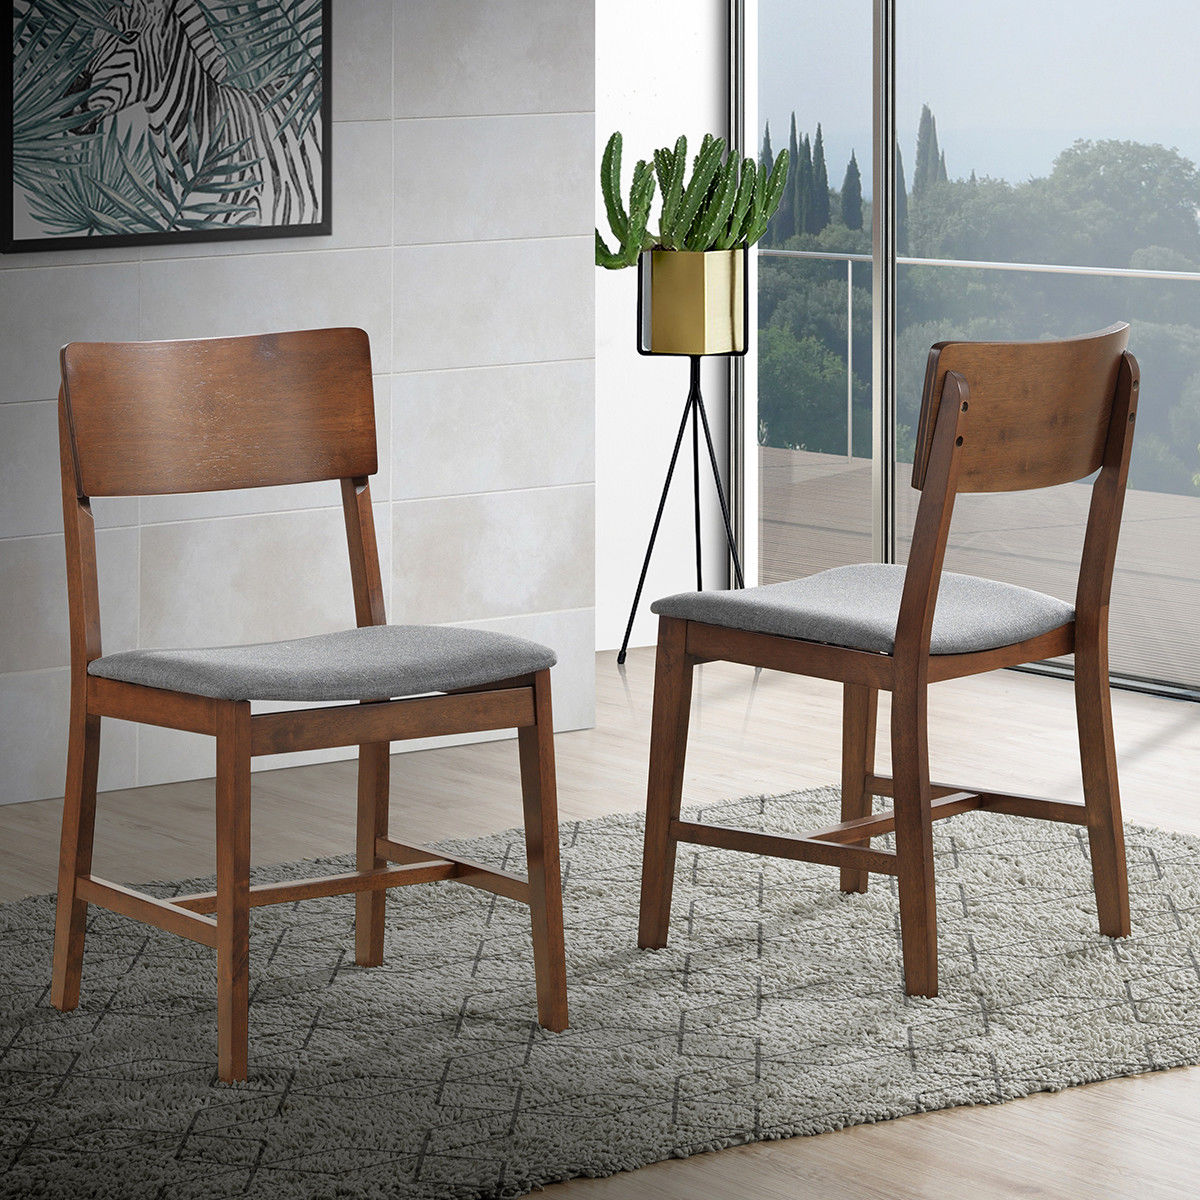 Gymax Set Of 4 Mid Century Modern Dining Side Chairs Fabric